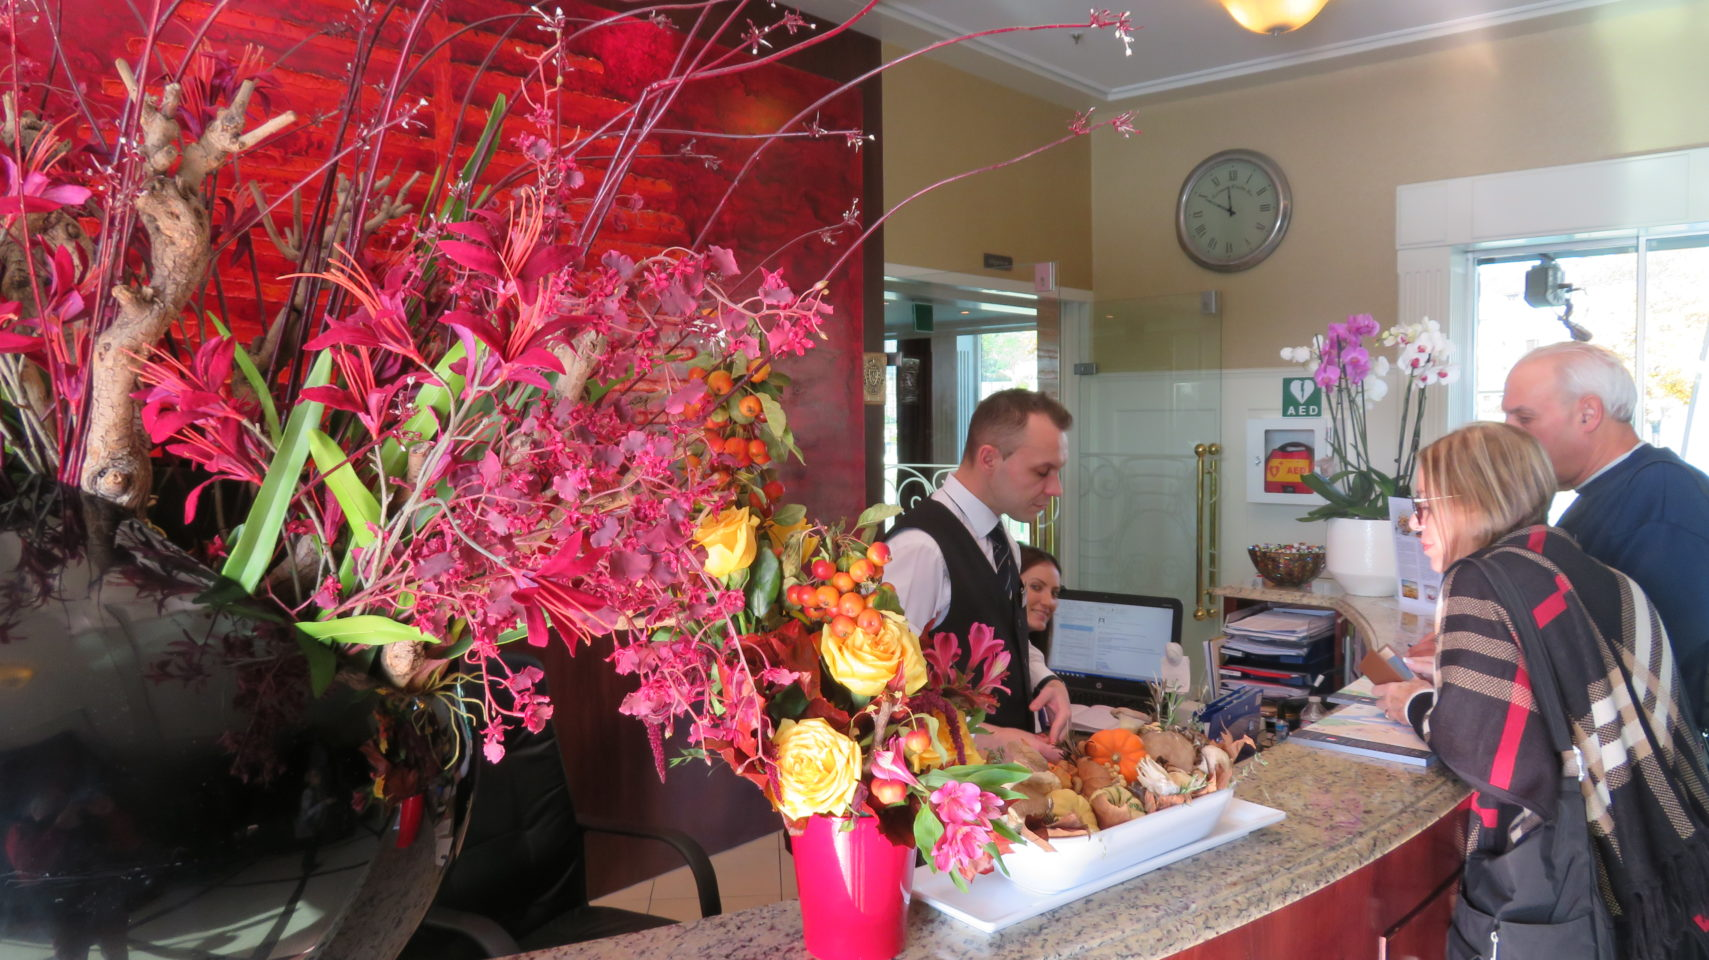 Staffed round the clock, the Reception Desk of AMALegro (Paris and Normandie AMAWaterways Cruise)